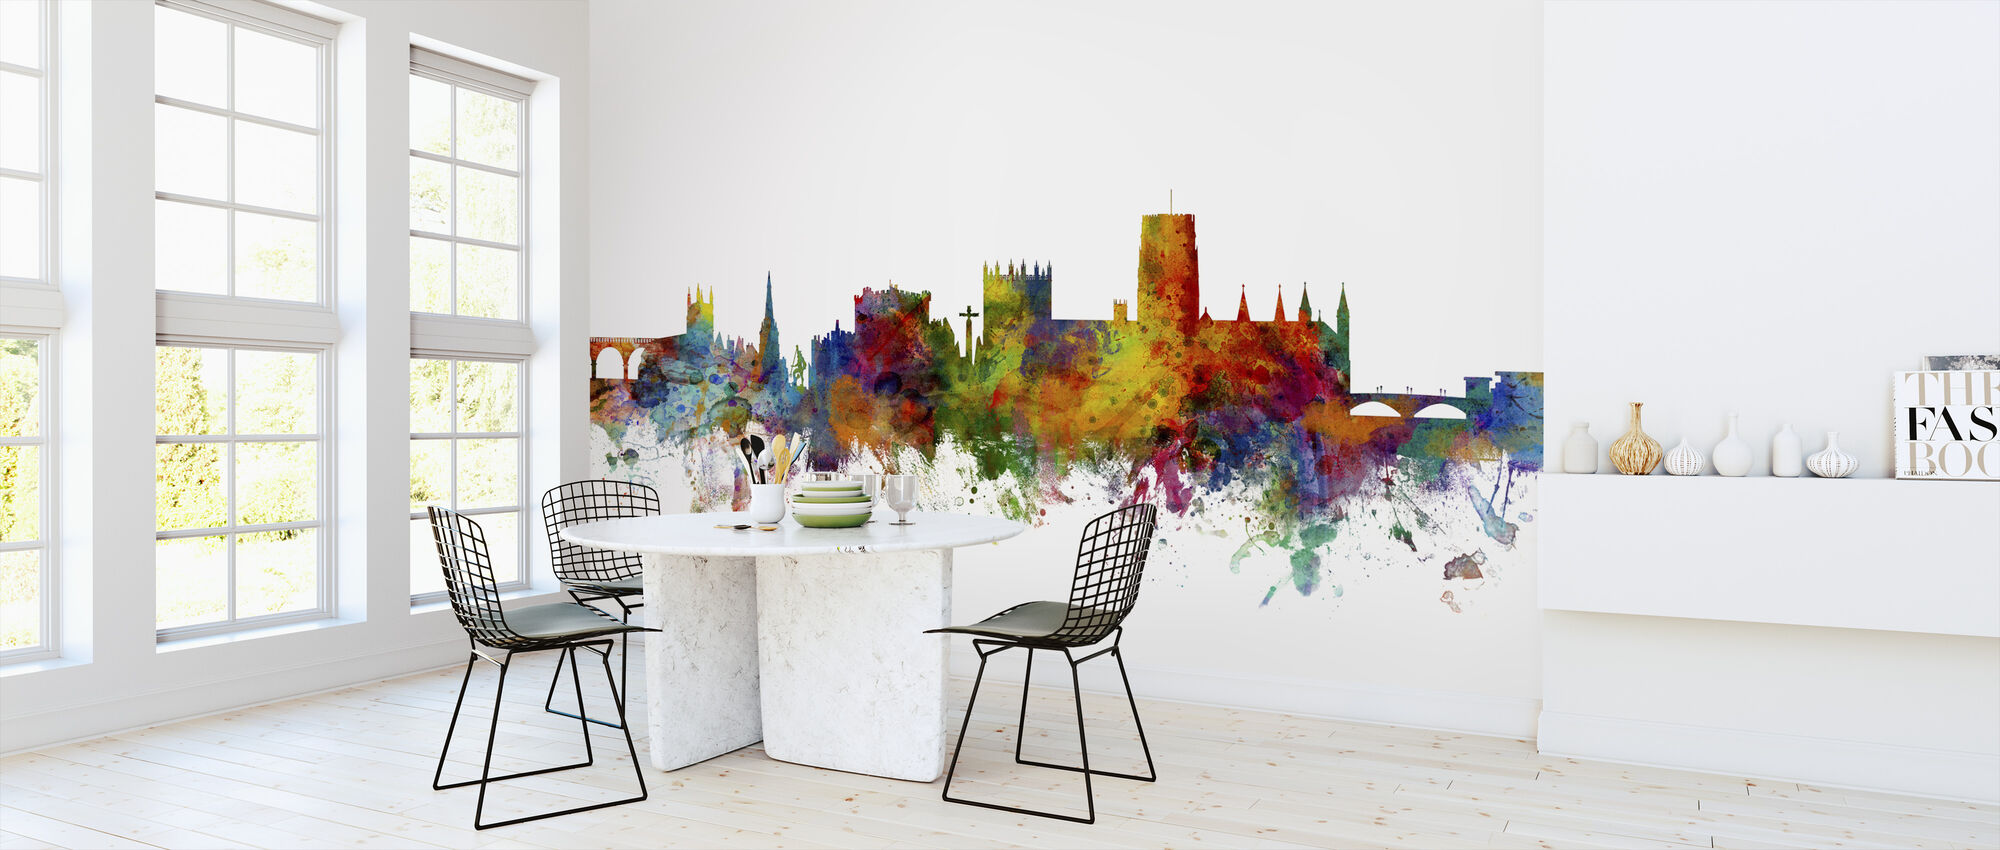 Durham England Skyline Cityscape - Wallpaper - Kitchen